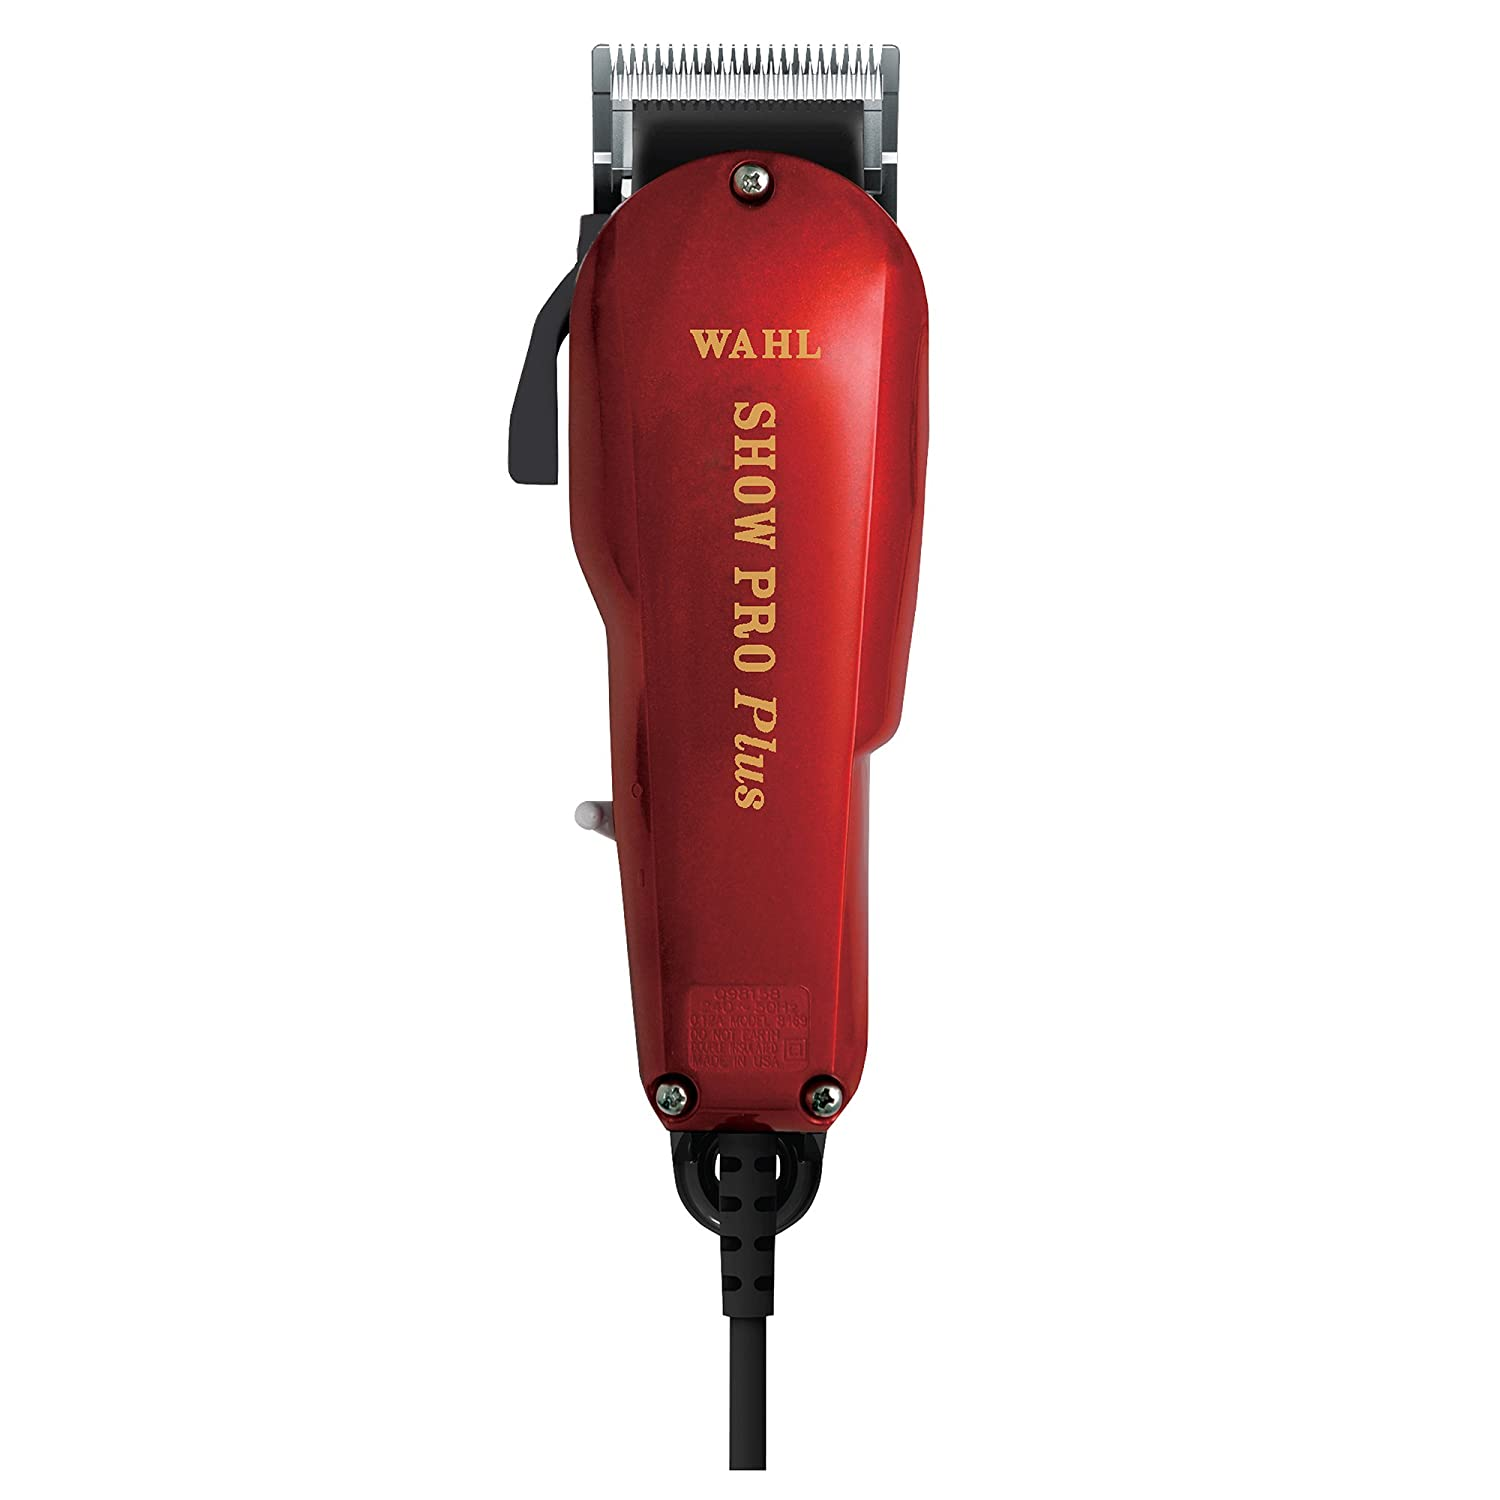 Wahl Professional Animal Show Pro Plus Equine Clipper #9482-700 Wahl Clipper Corp.